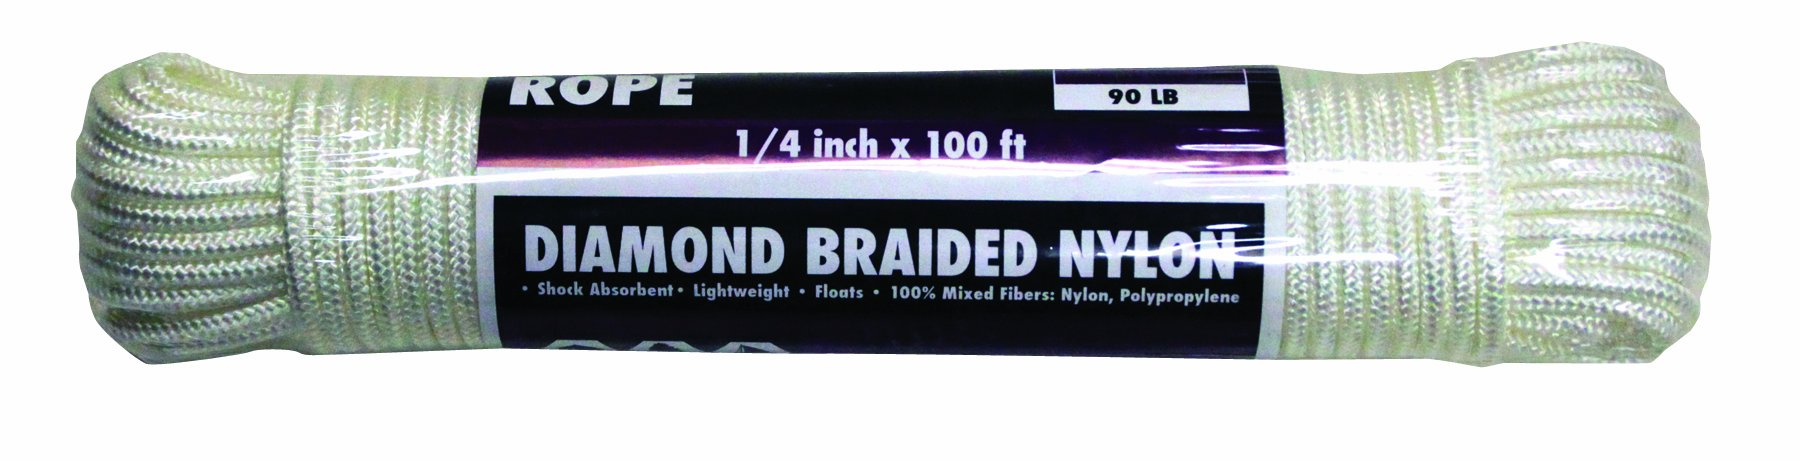 Rope King DBN-14100 Diamond Braided Nylon Rope 1/4 inch x 100 feet